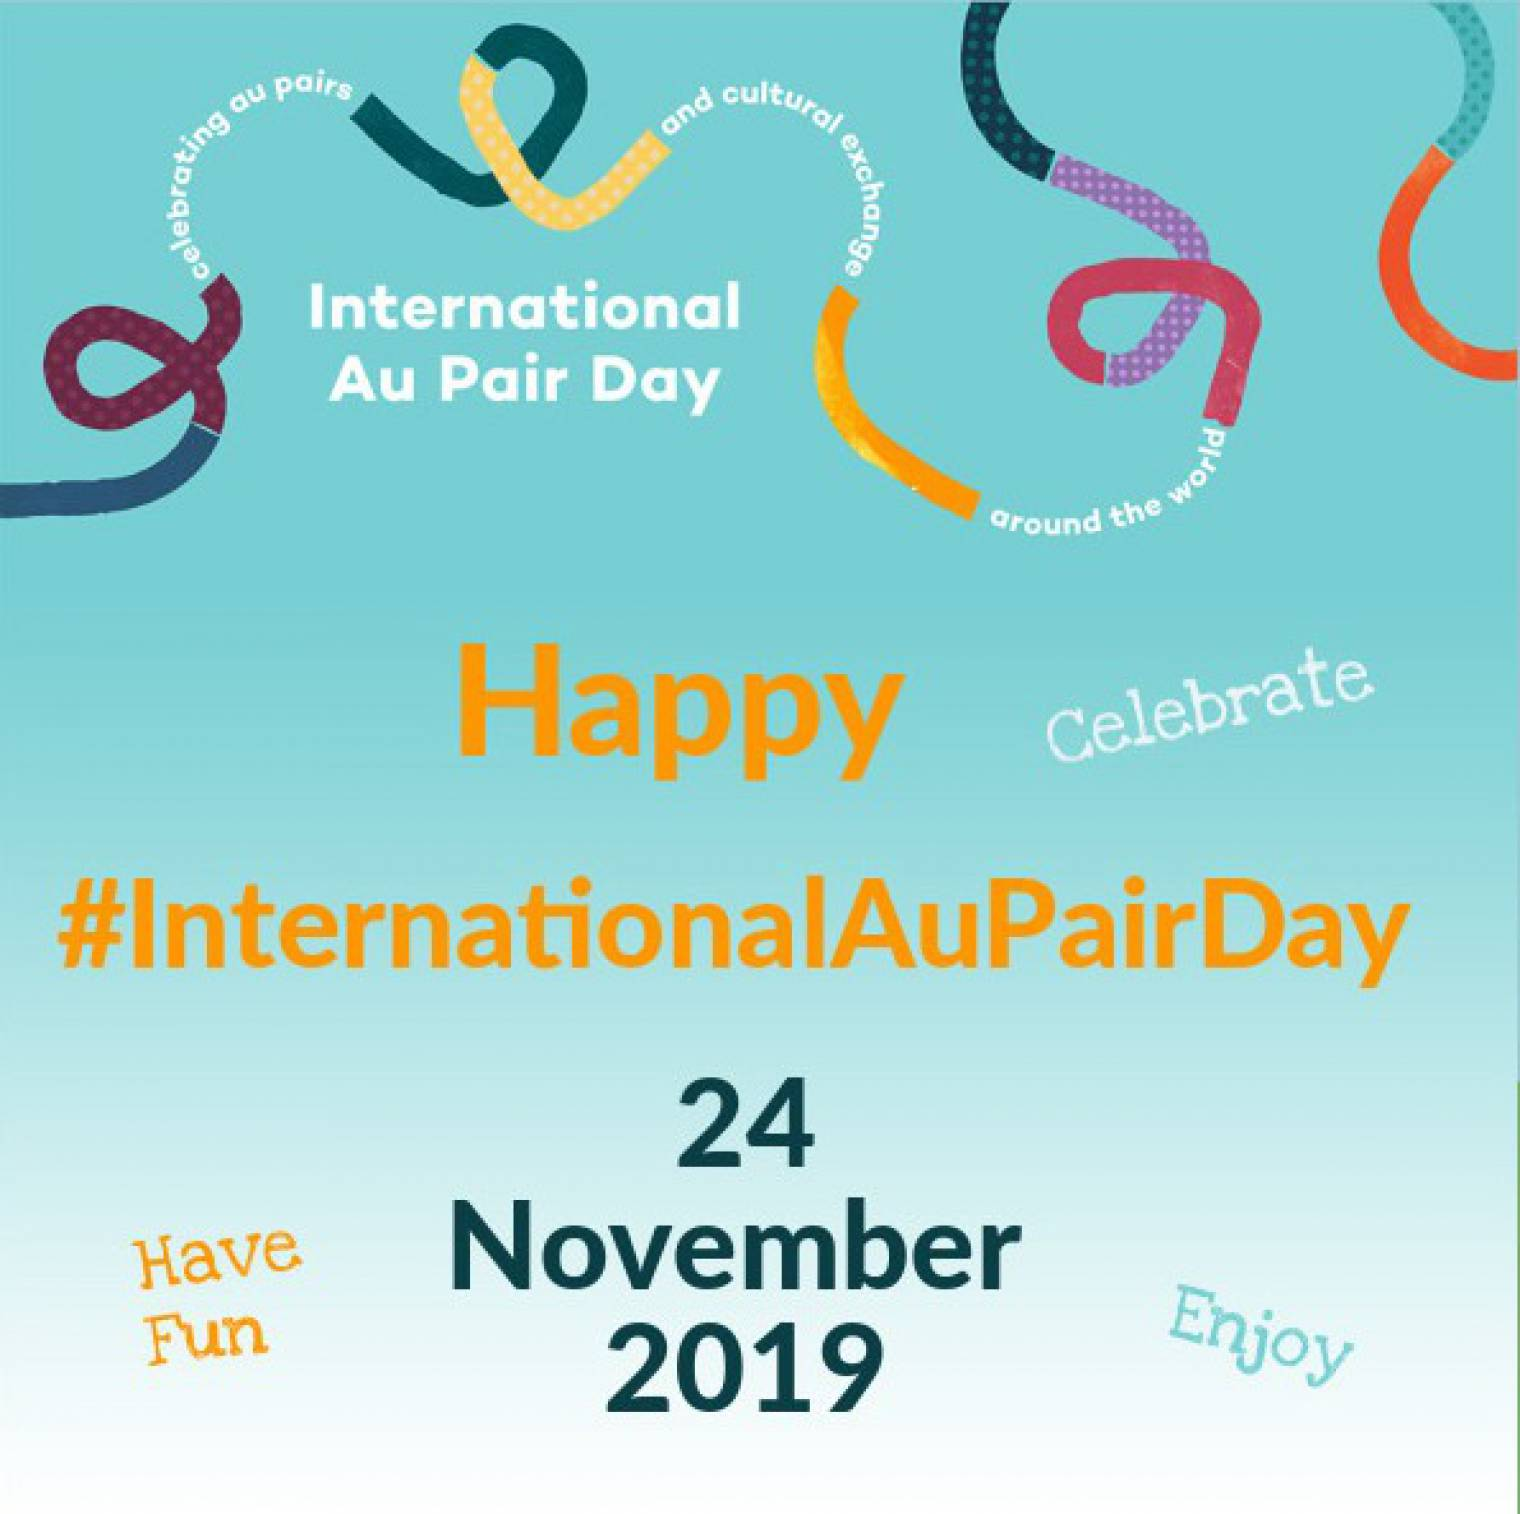 Happy International Au Pair Day